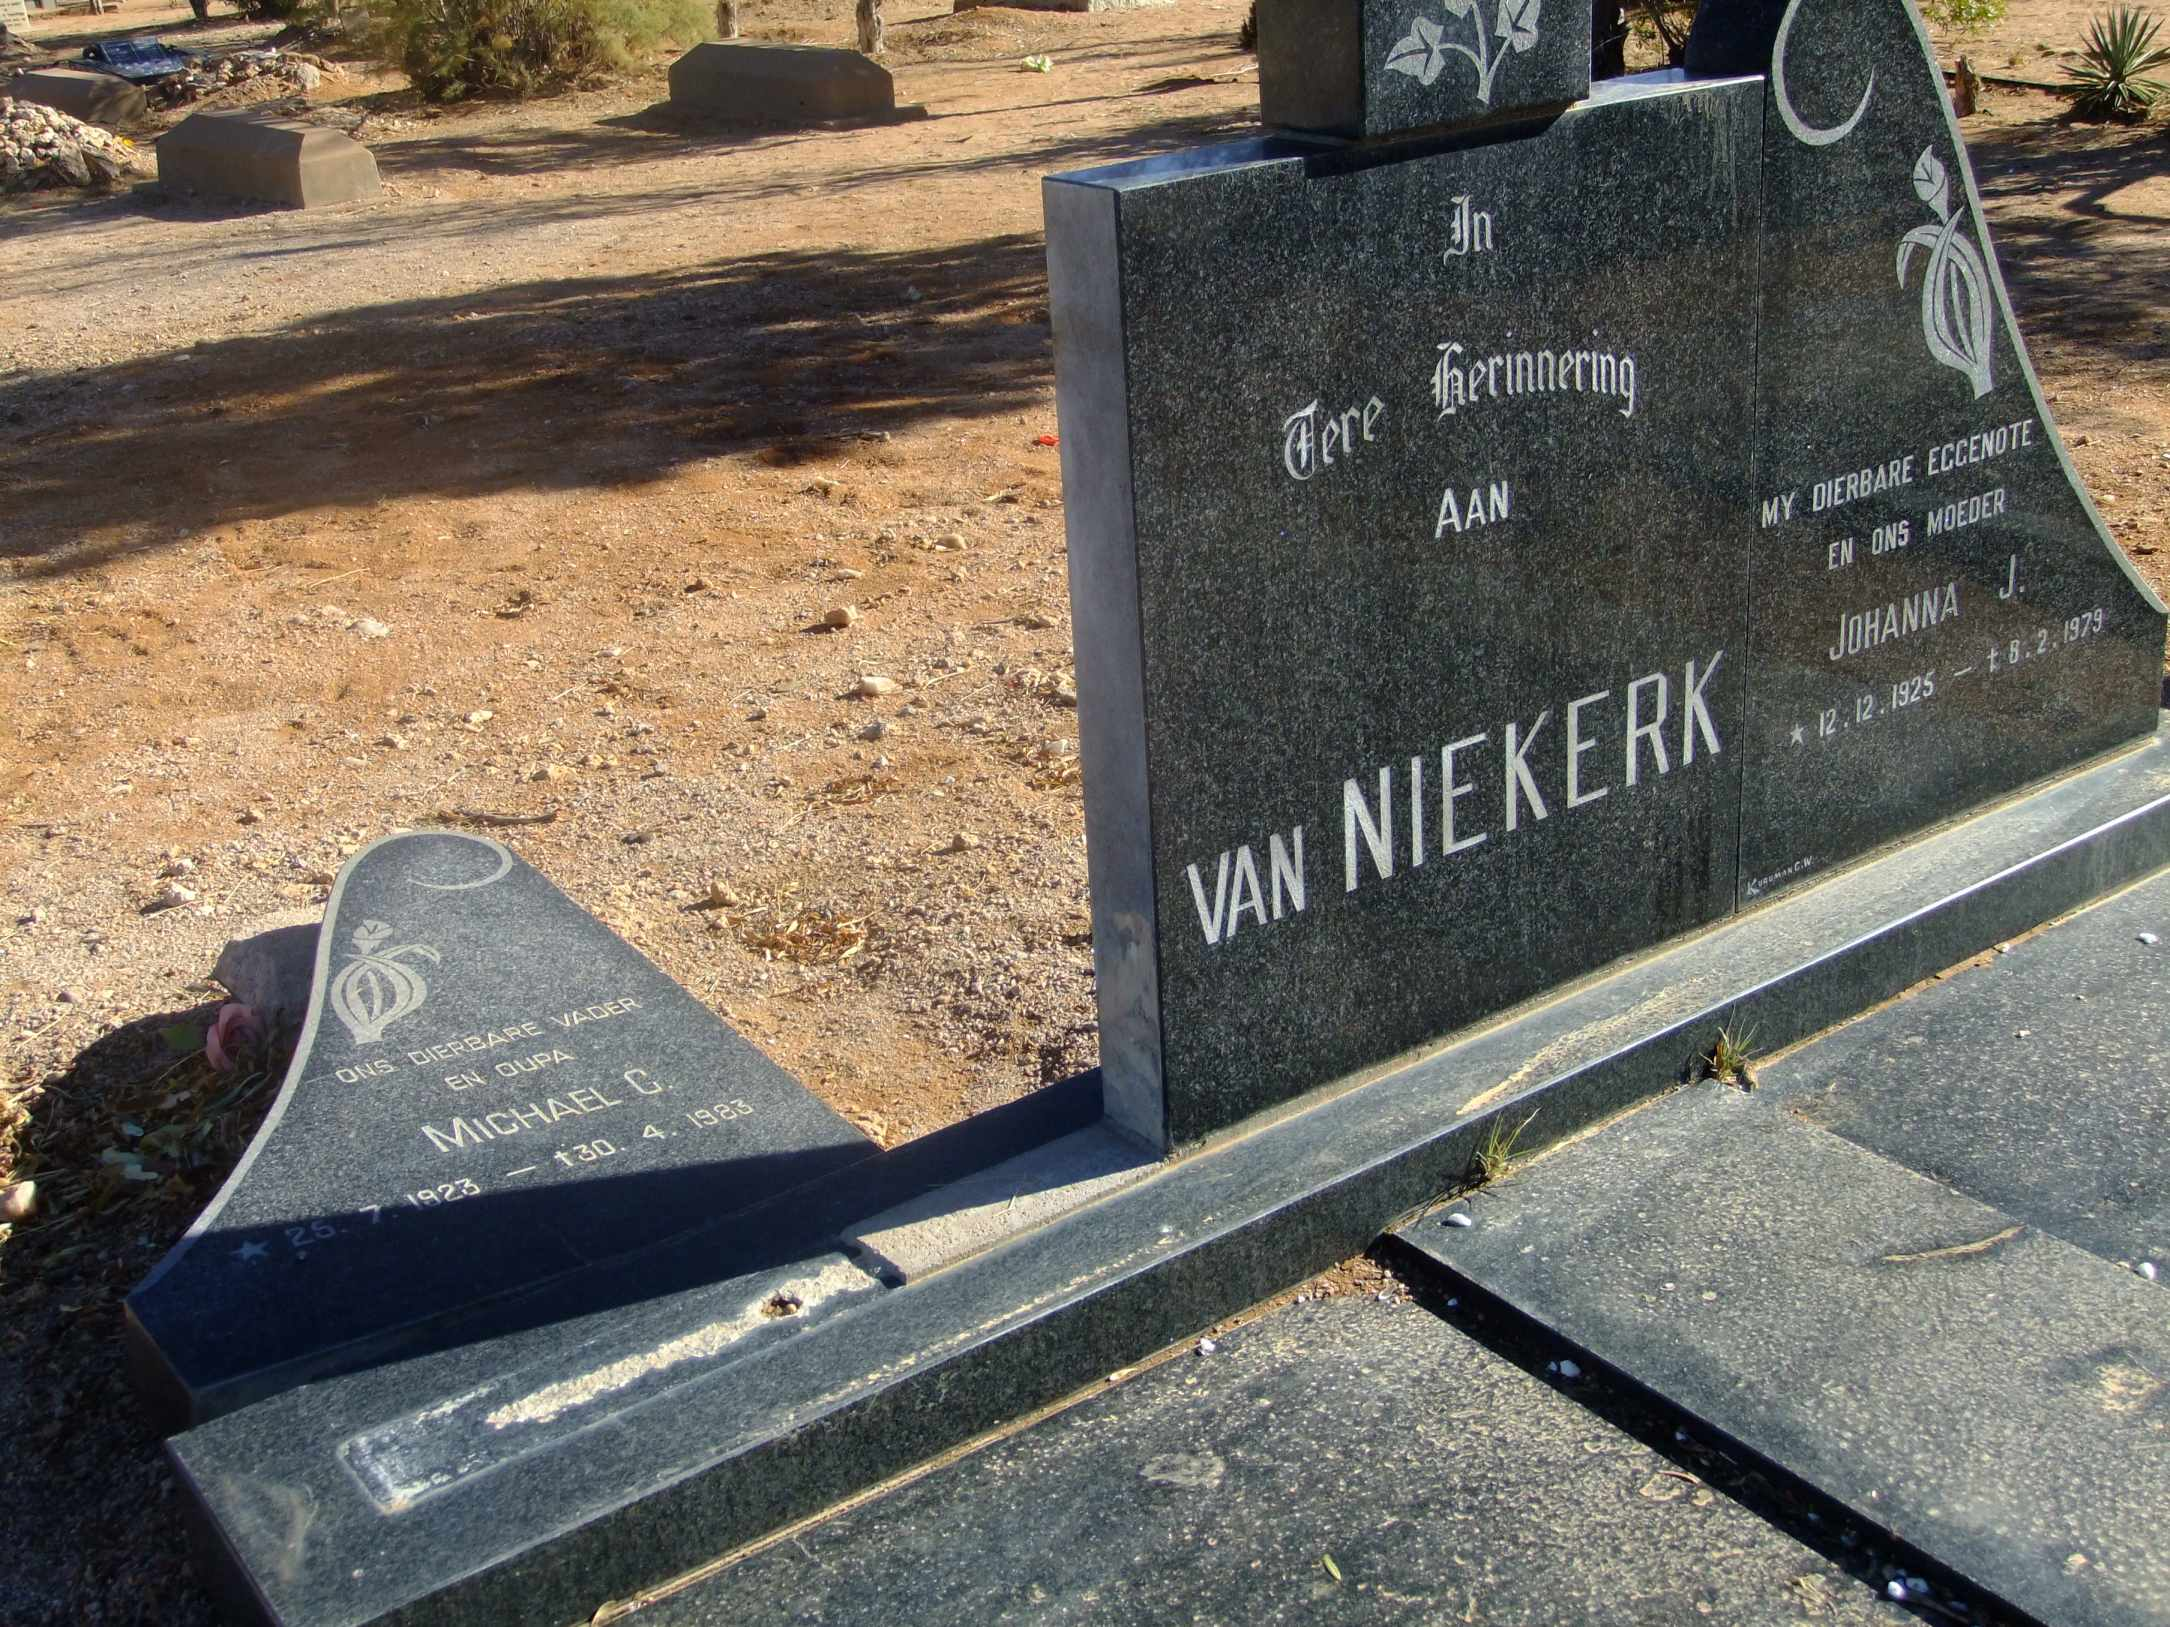 Van Niekerk, Michael born 25 July 1923 died 30 April 1983 and Johanna born 12 December 1925 died 08 February 1979